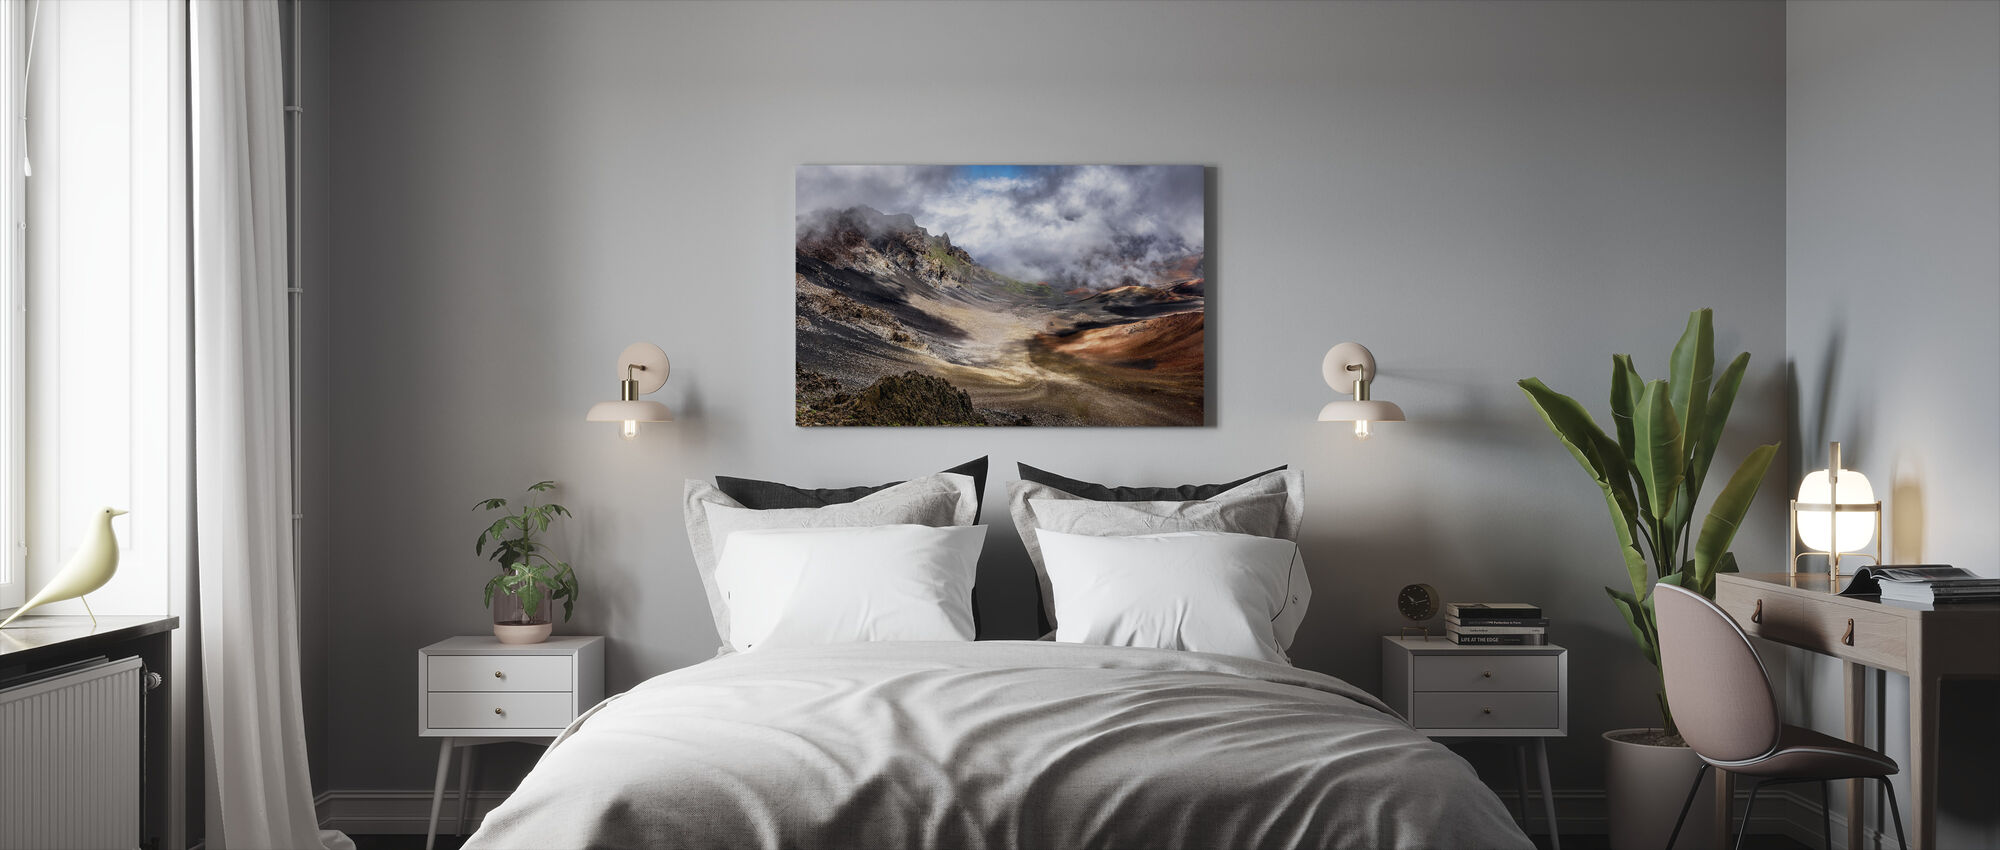 Kraters Rand - Canvas print - Slaapkamer